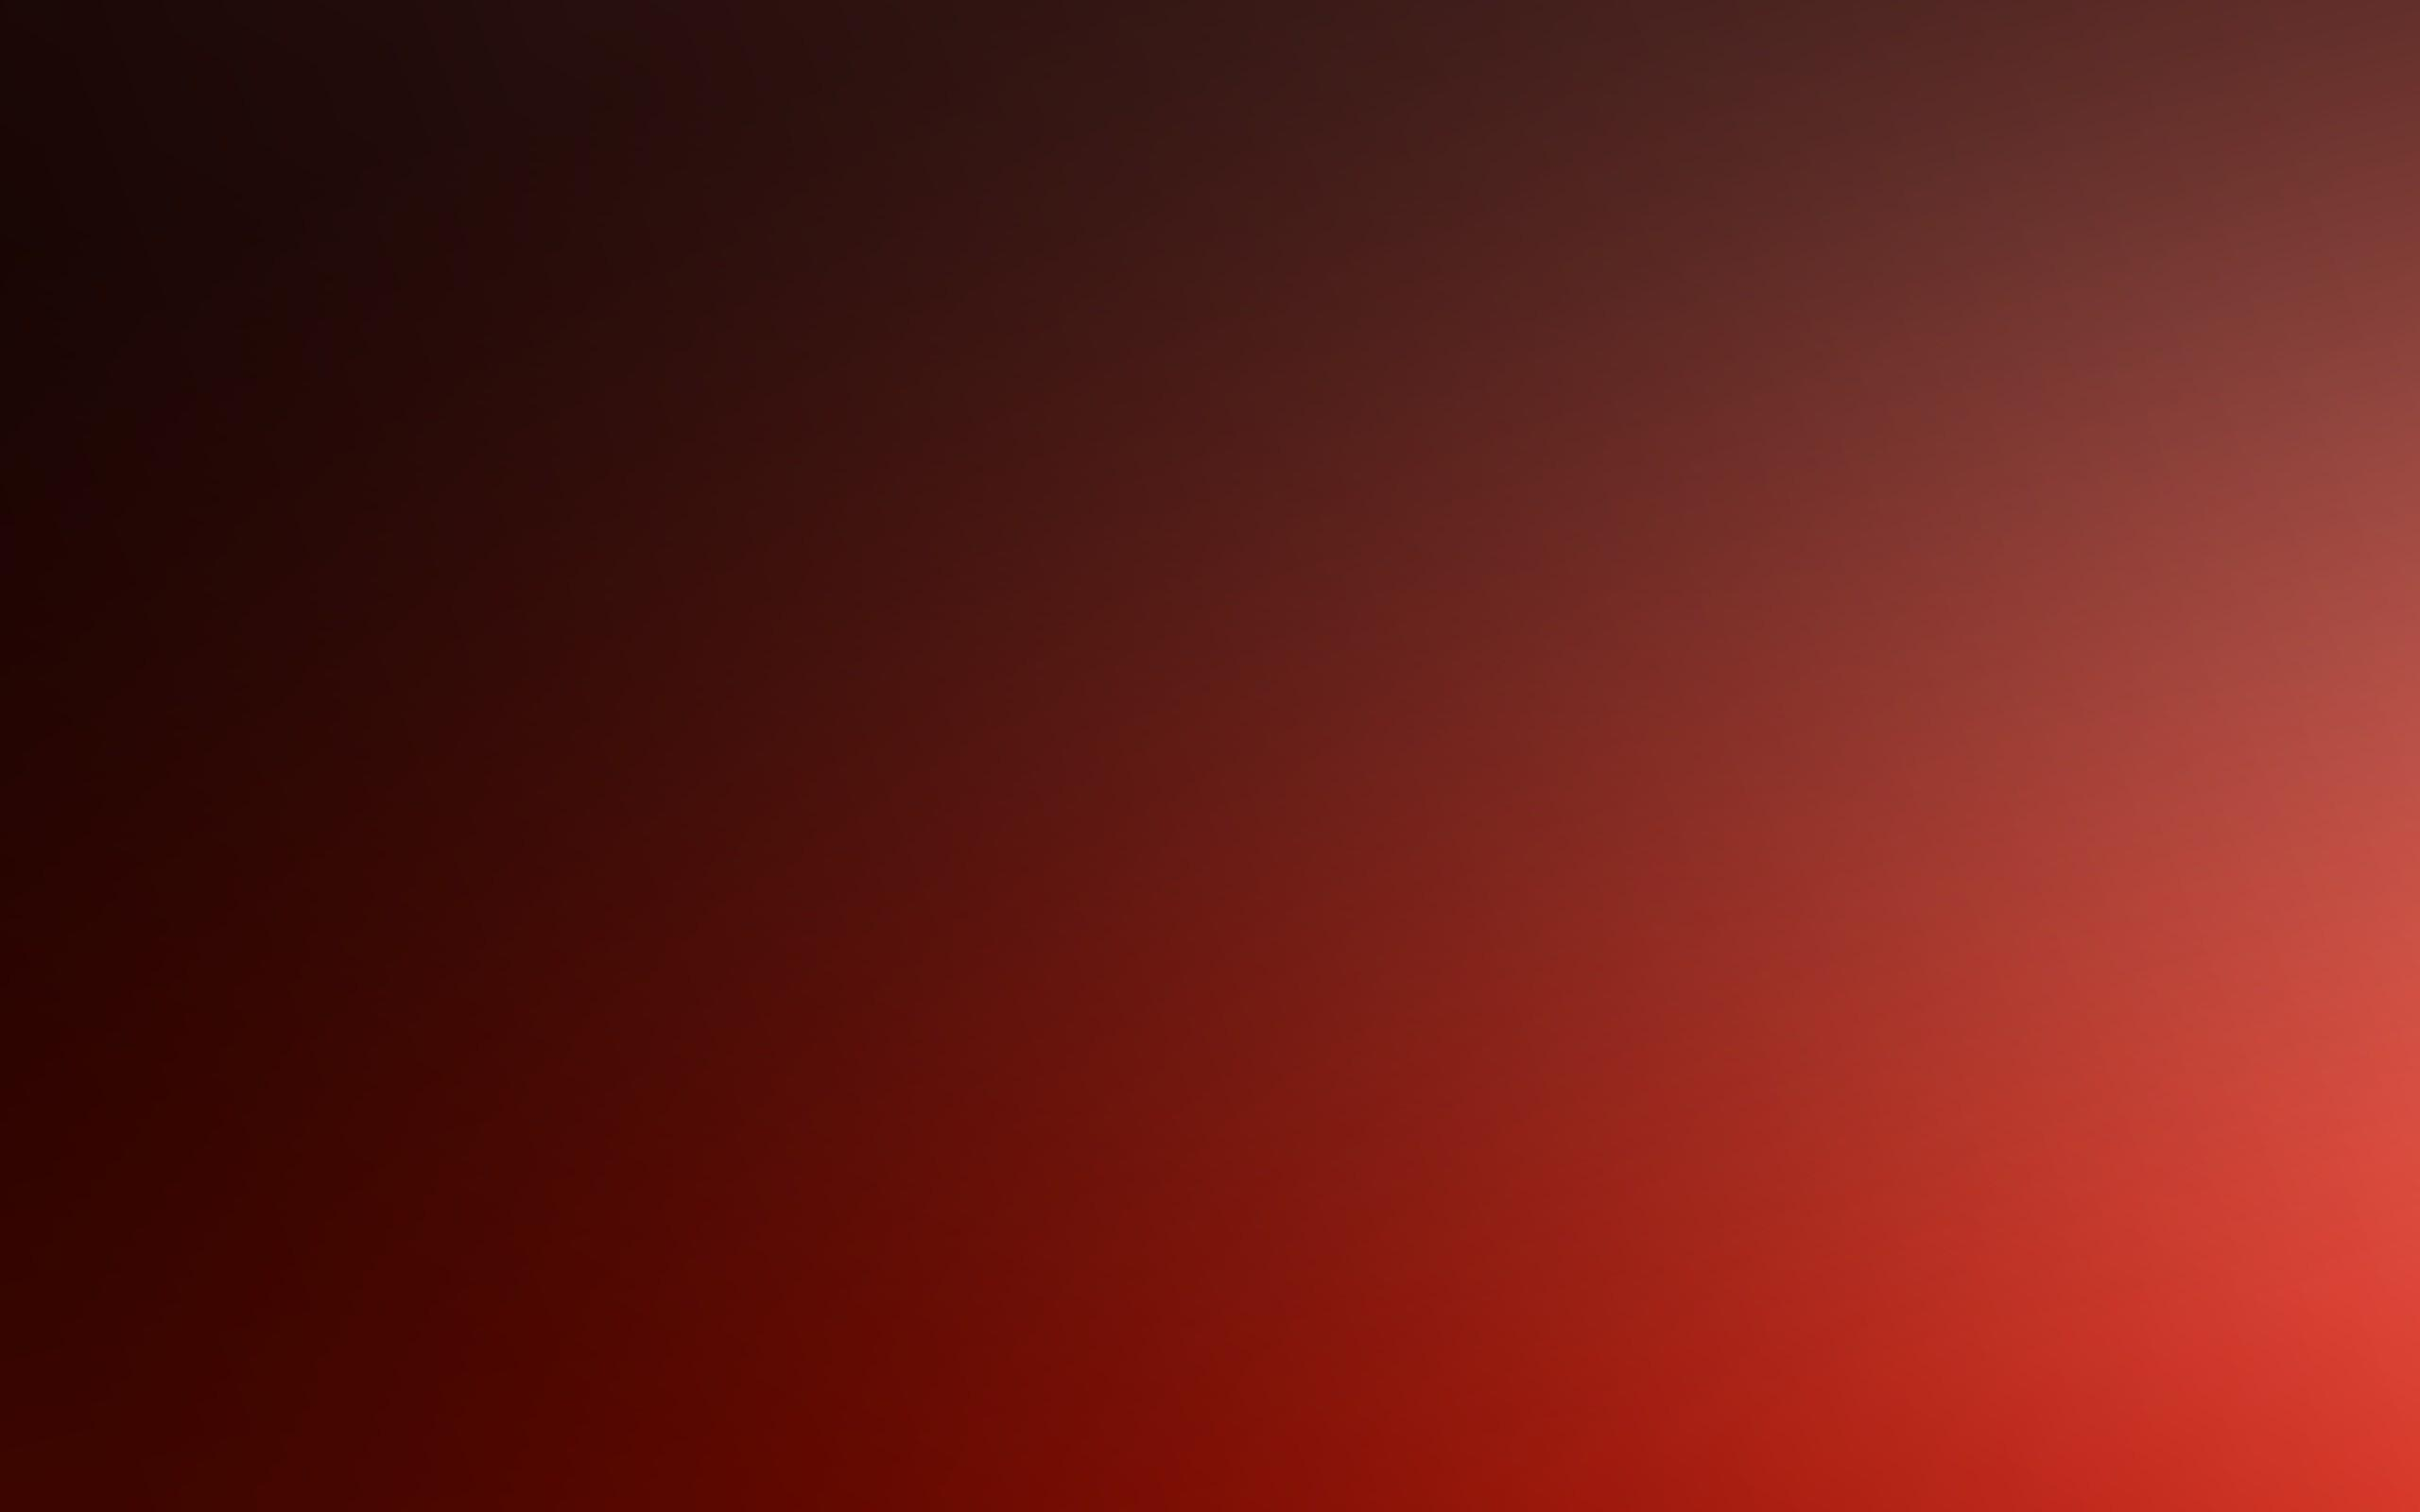 Dark Red Wallpapers - Wallpaper Cave